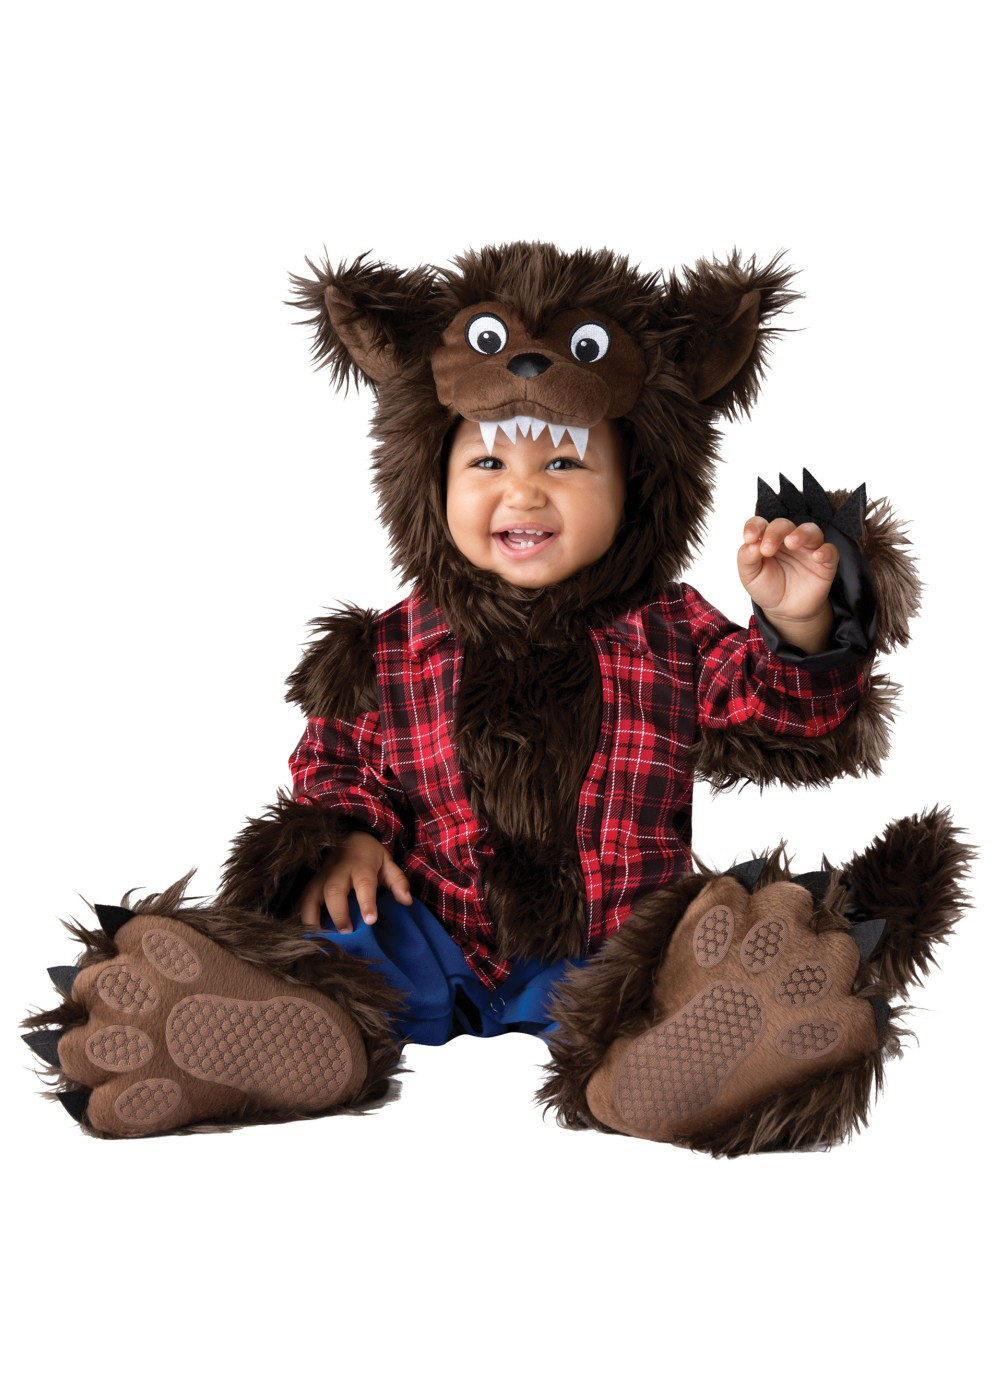 Werewolf Toys For Boys : Big selection of halloween costumes for boys